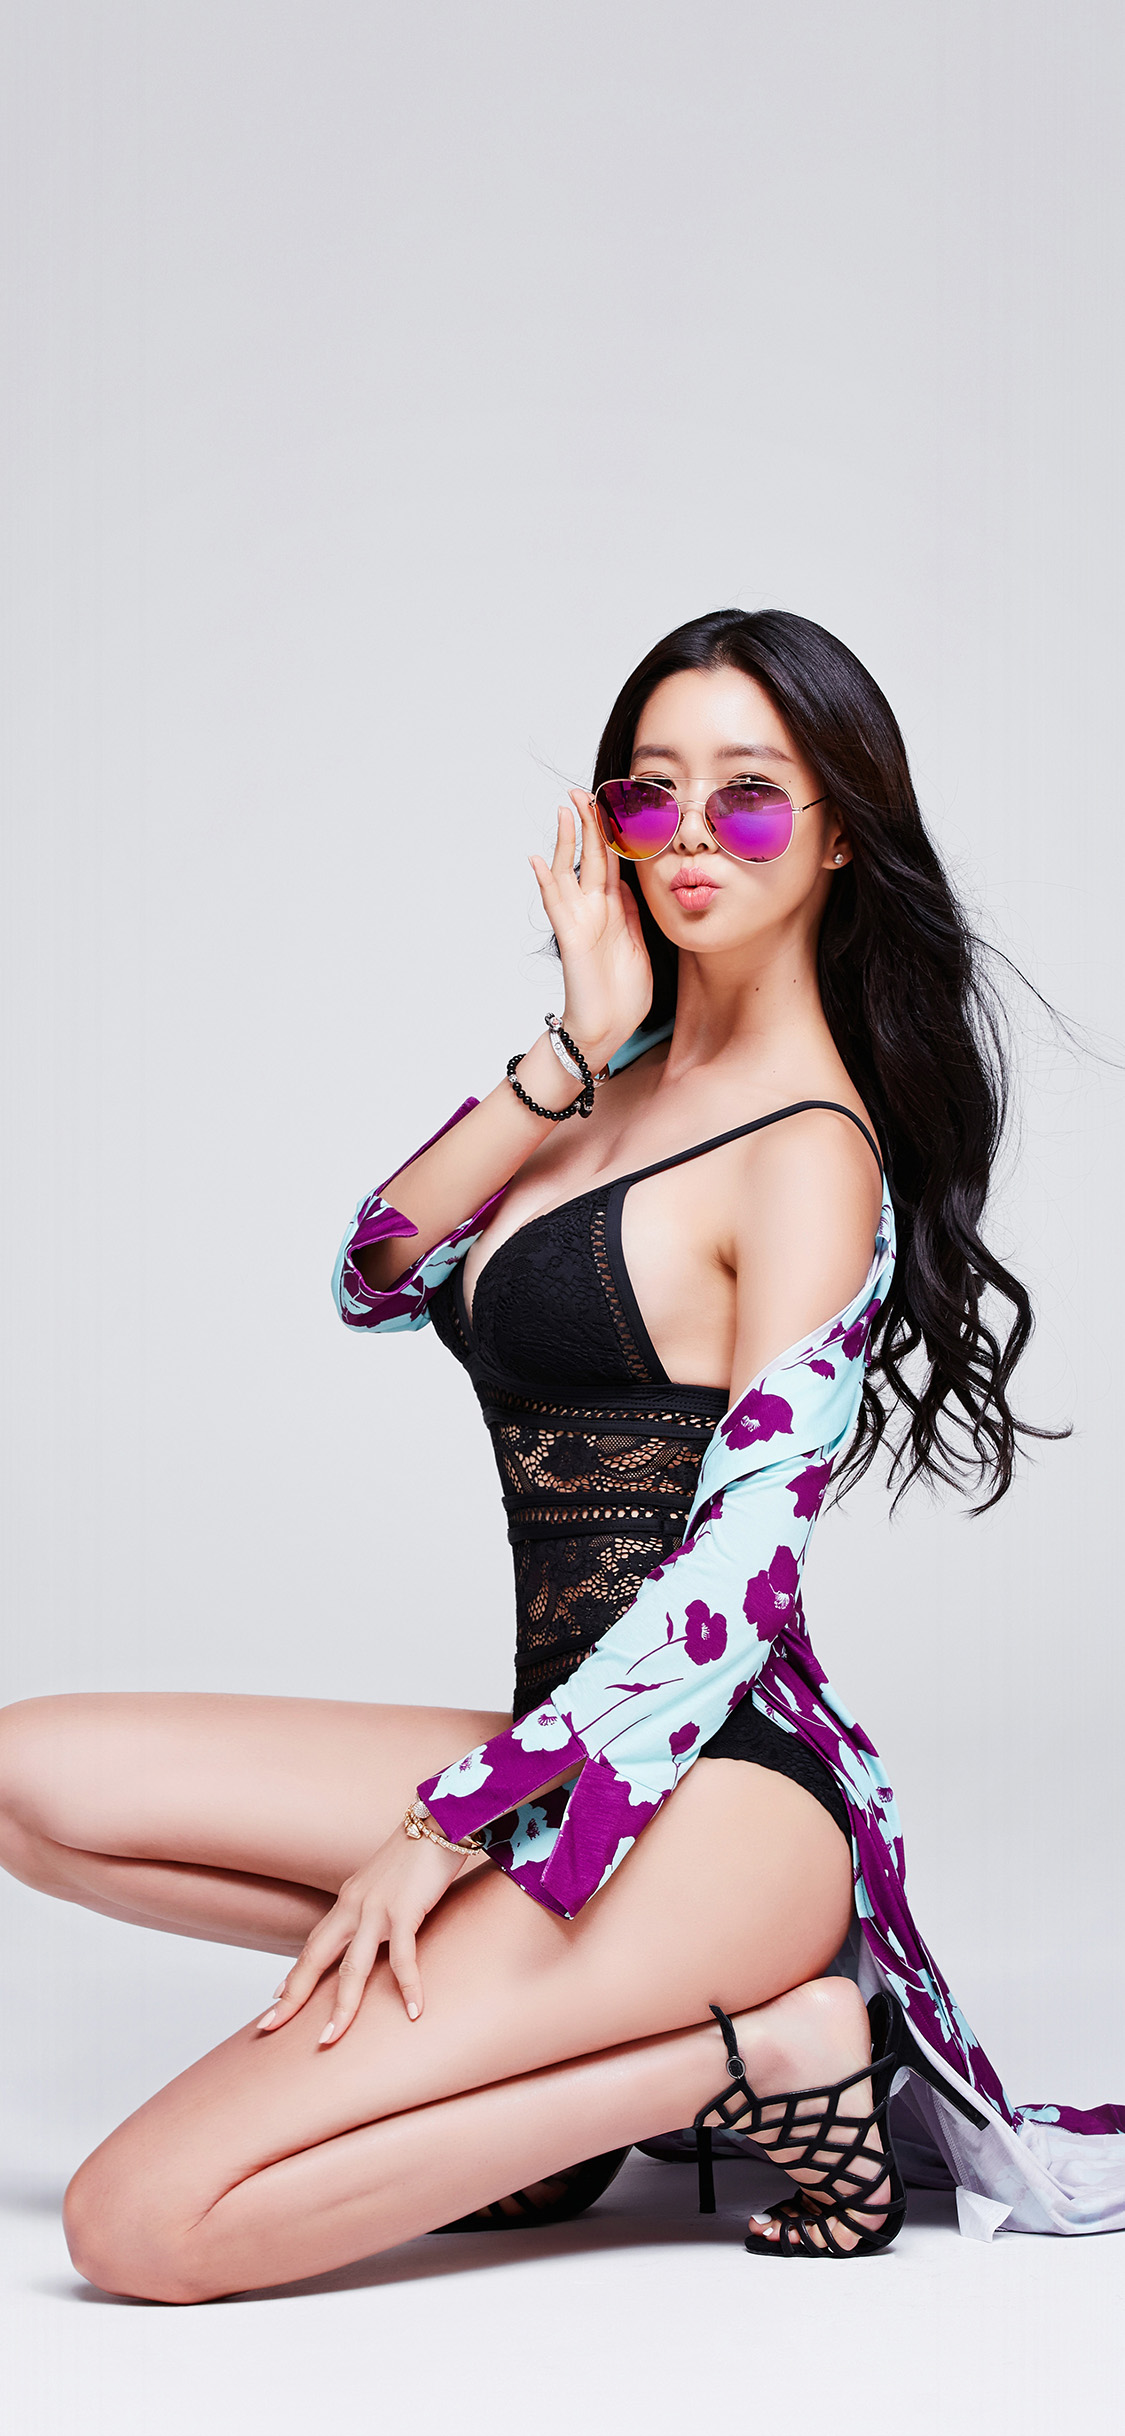 iPhonexpapers.com-Apple-iPhone-wallpaper-hq00-girl-sexy-bikini-kpop-asian-summer